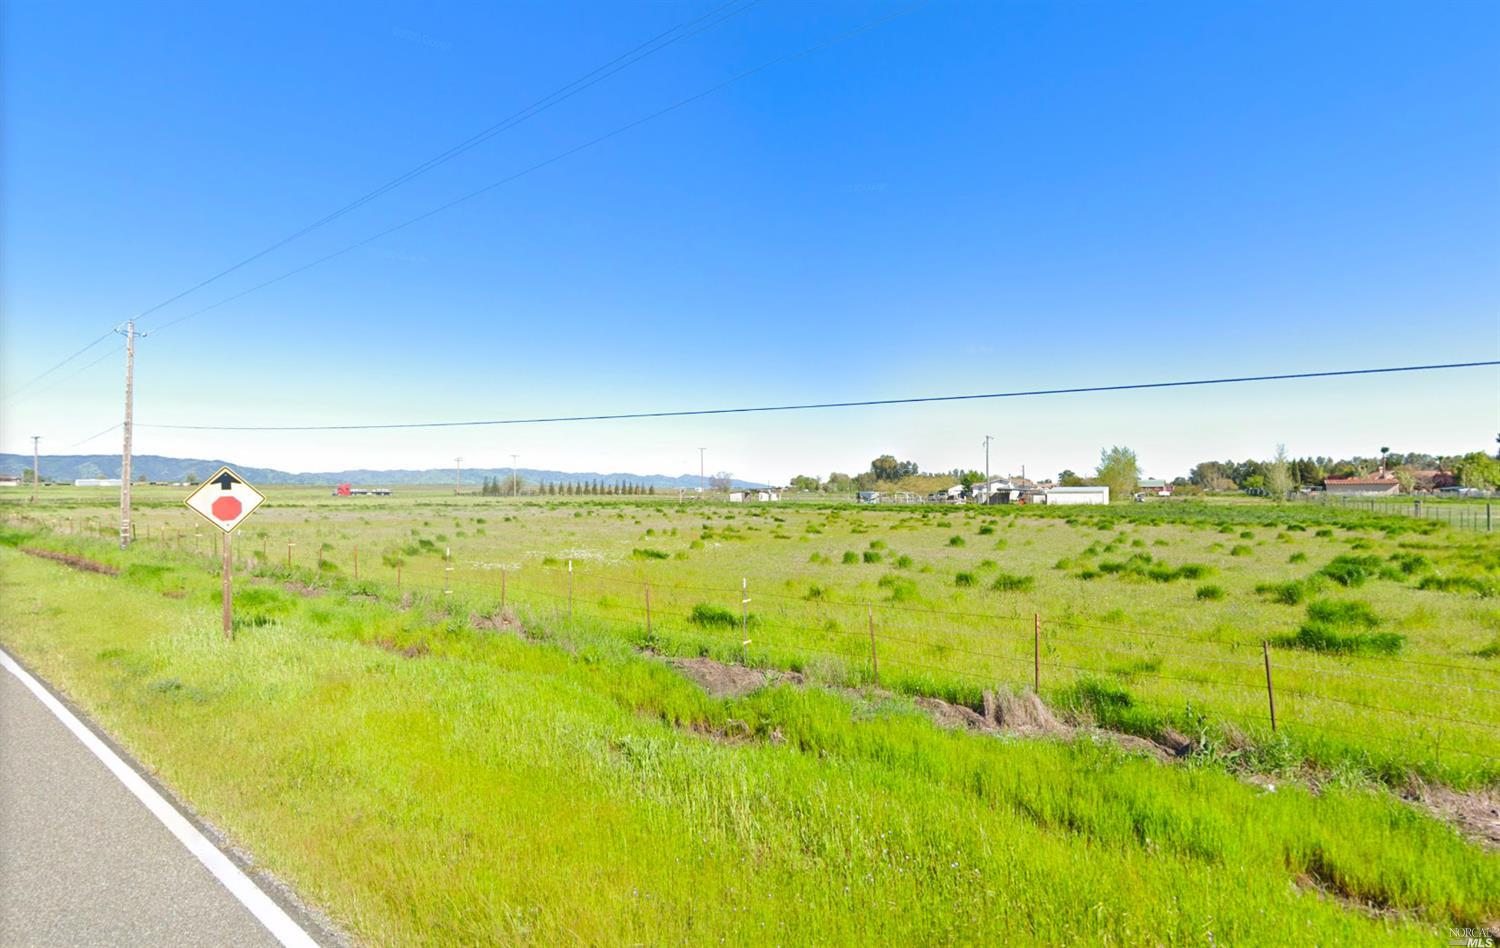 Dream Home building site on just under 5 Acres.  Located adjacent to 505, this sweet country property offers lots of room for building that gorgeous modern farm house.  Bring the kids, goats, horses and your imagination! Owner will carry with acceptable terms!